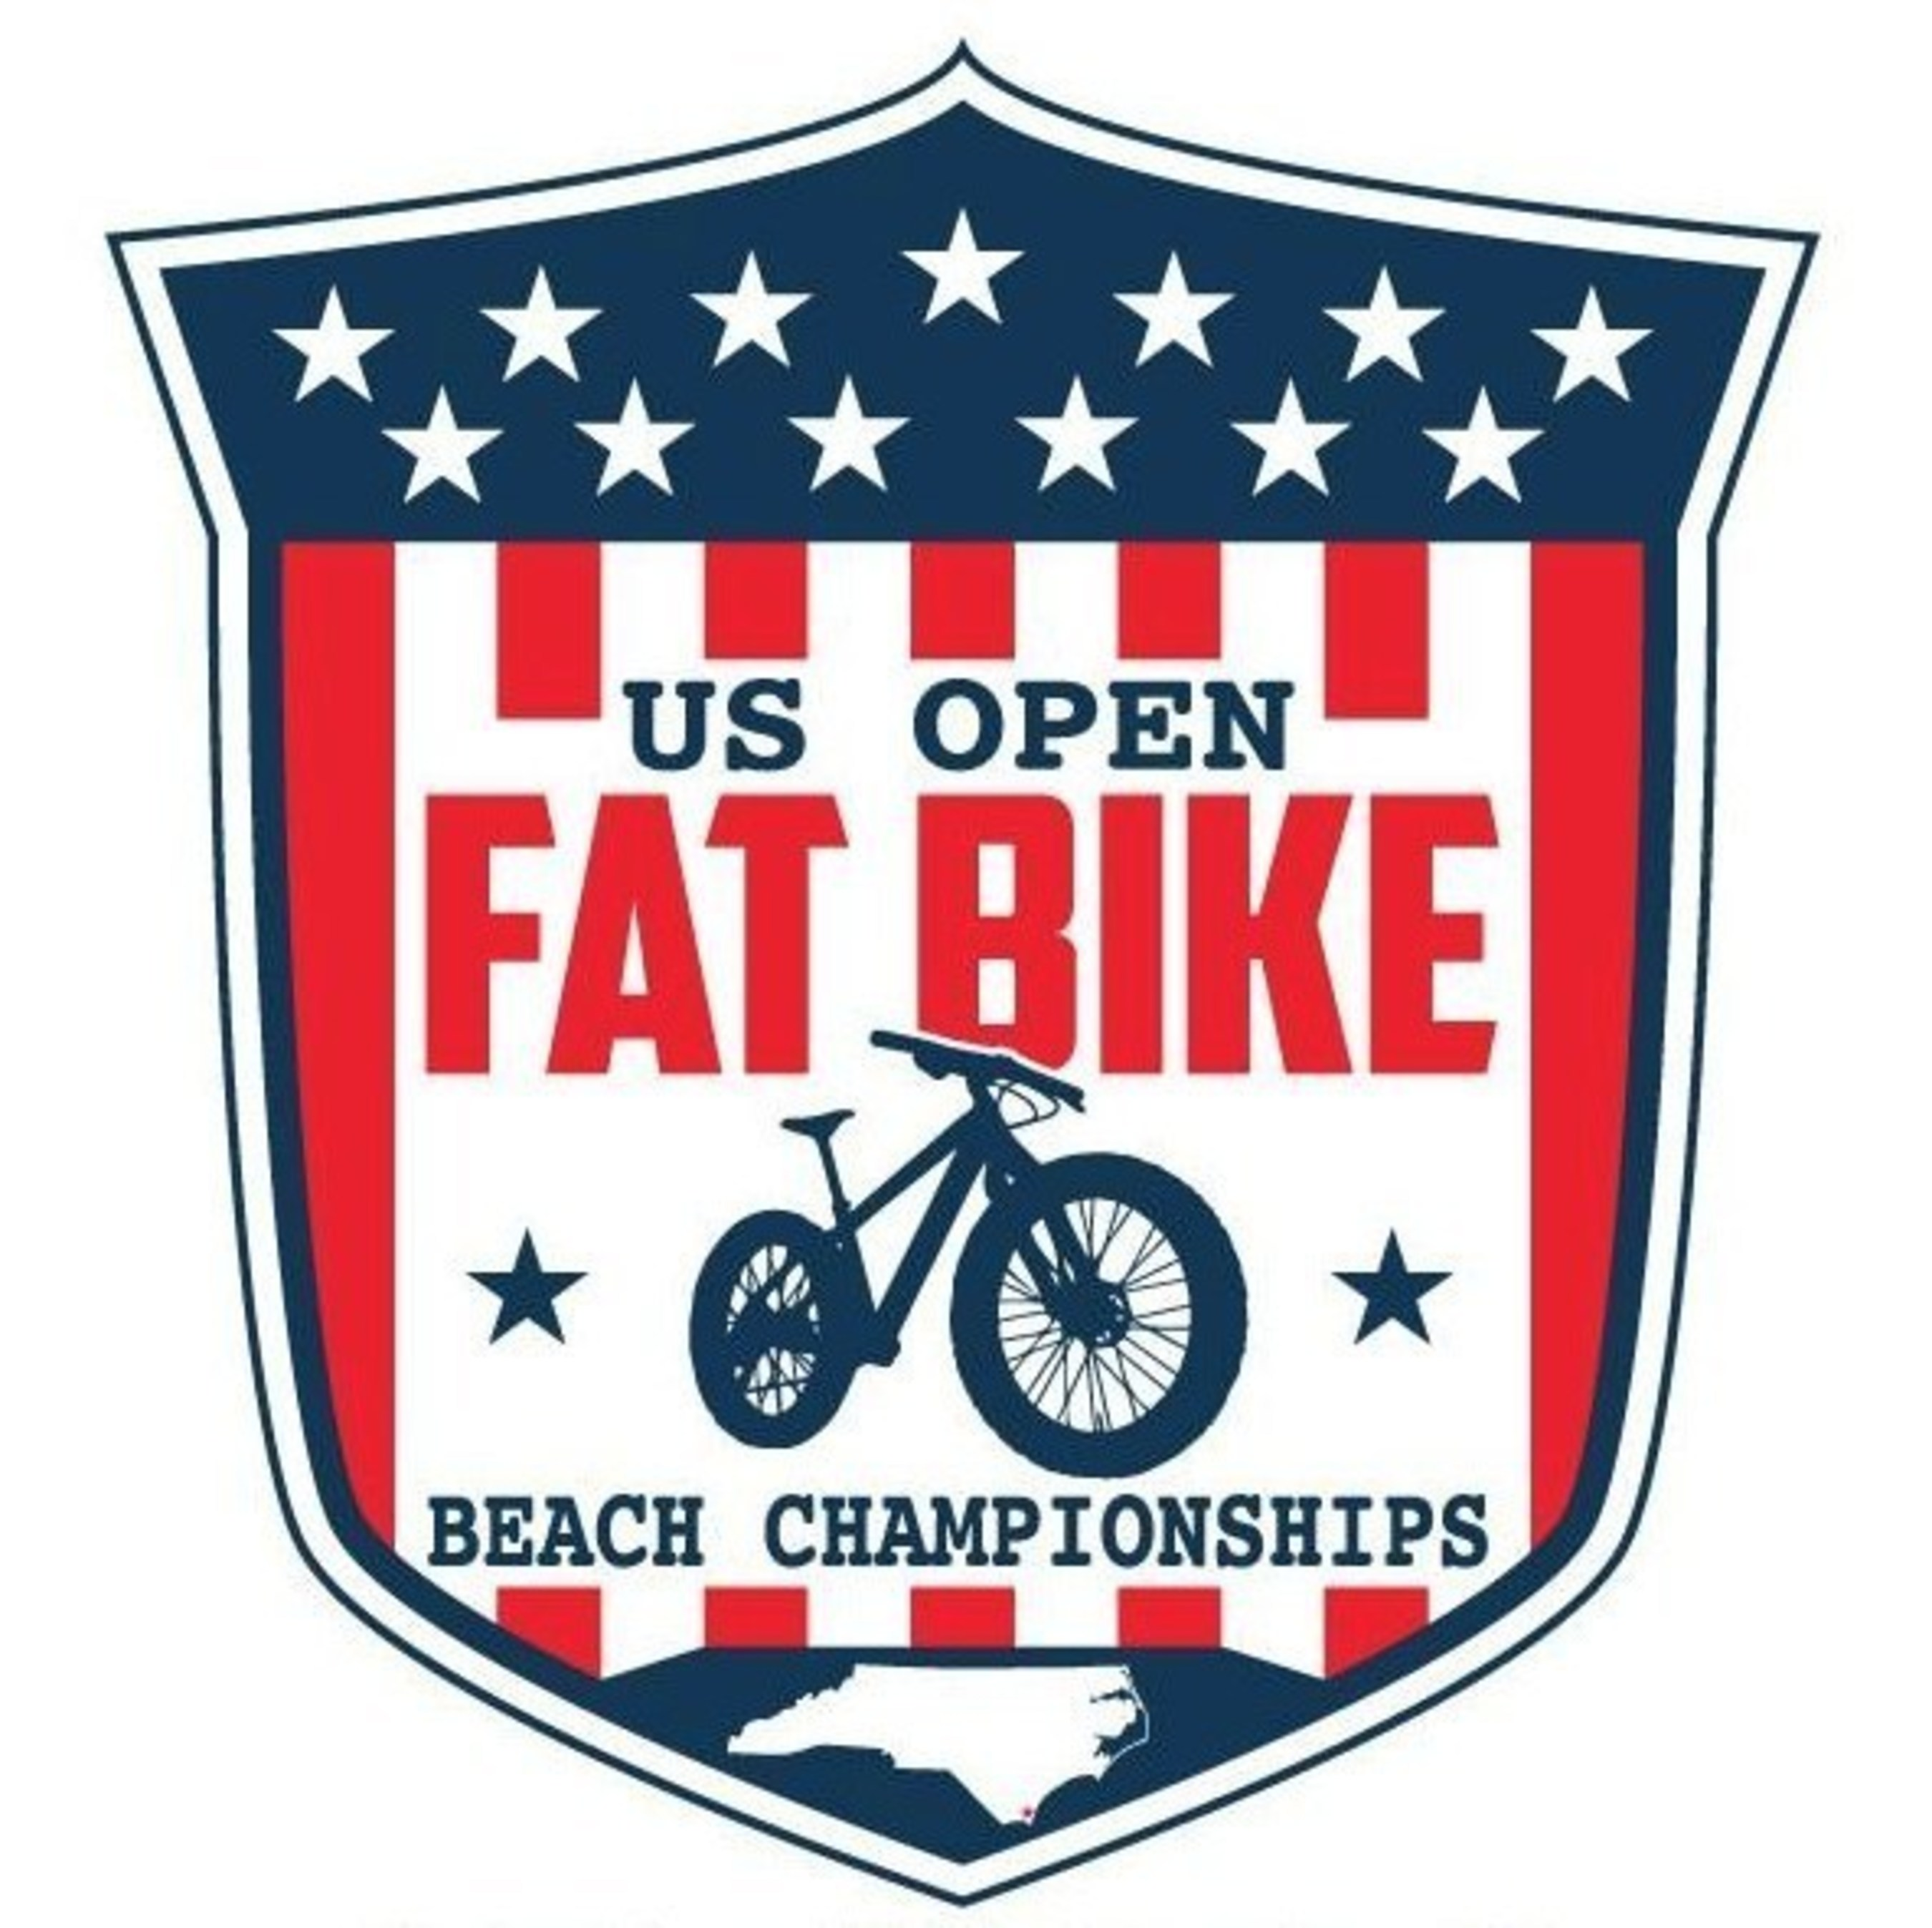 Fat Biking Booms - NC's Ben Brown to Defend Beach Championship